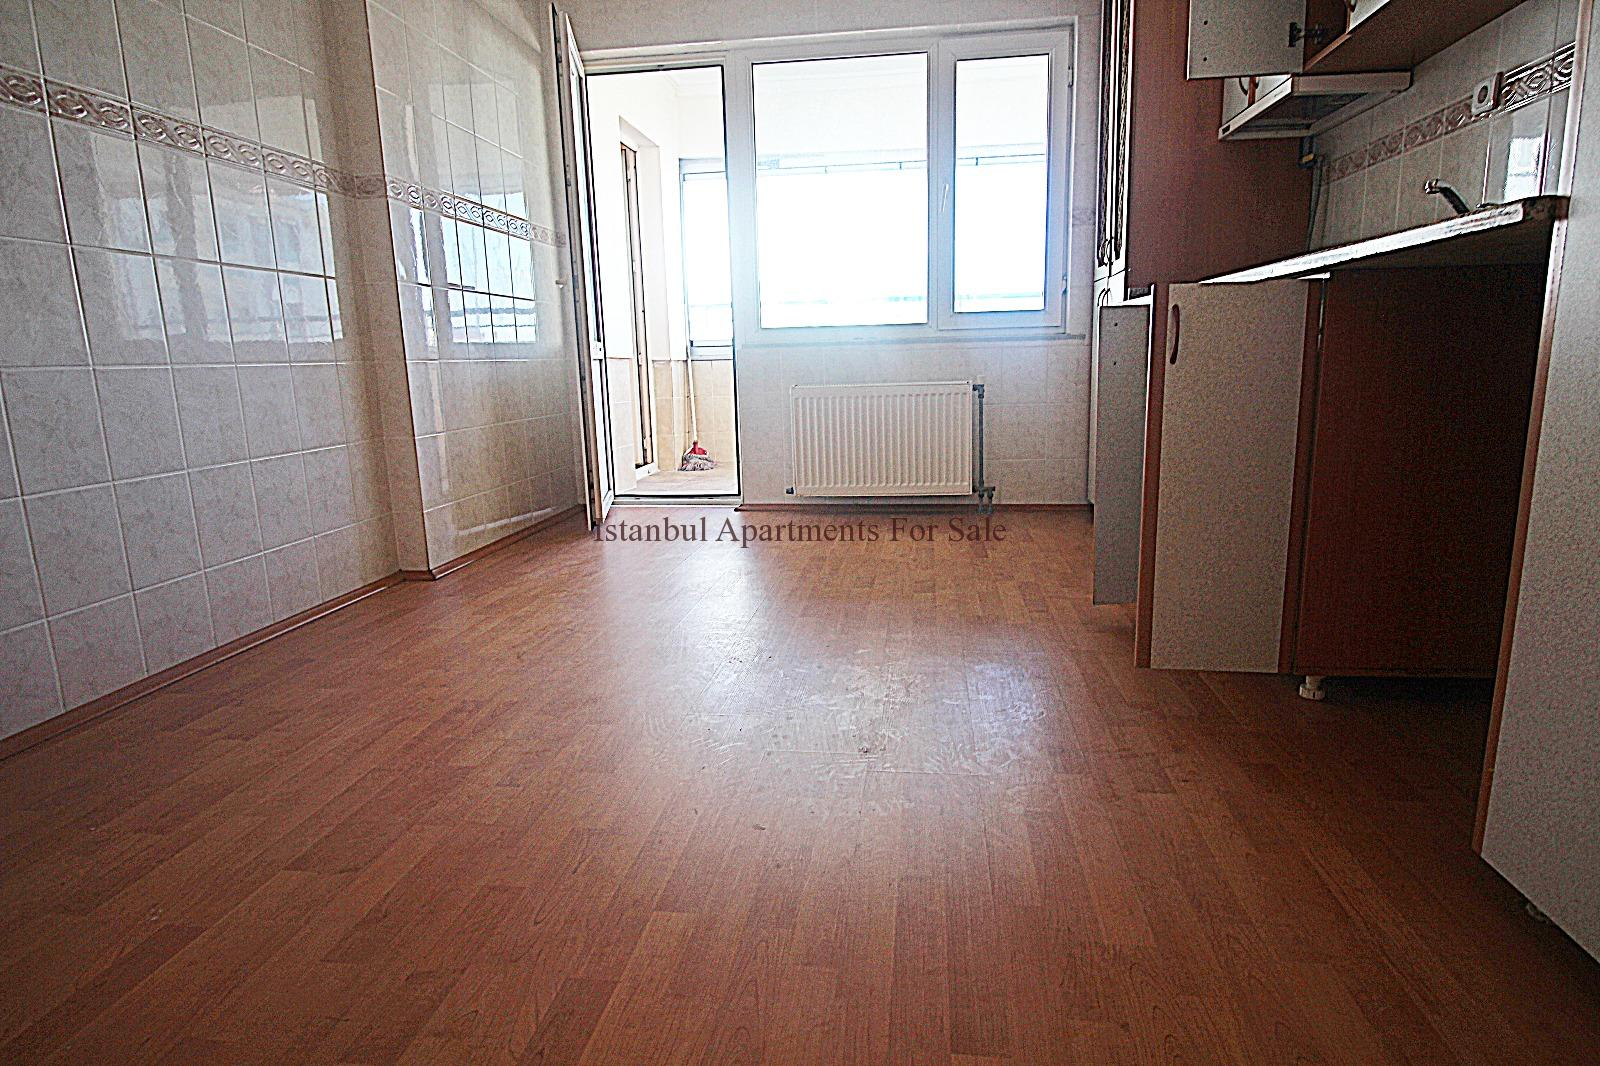 3 Bedroom Apartments in Istanbul with Cheap Price